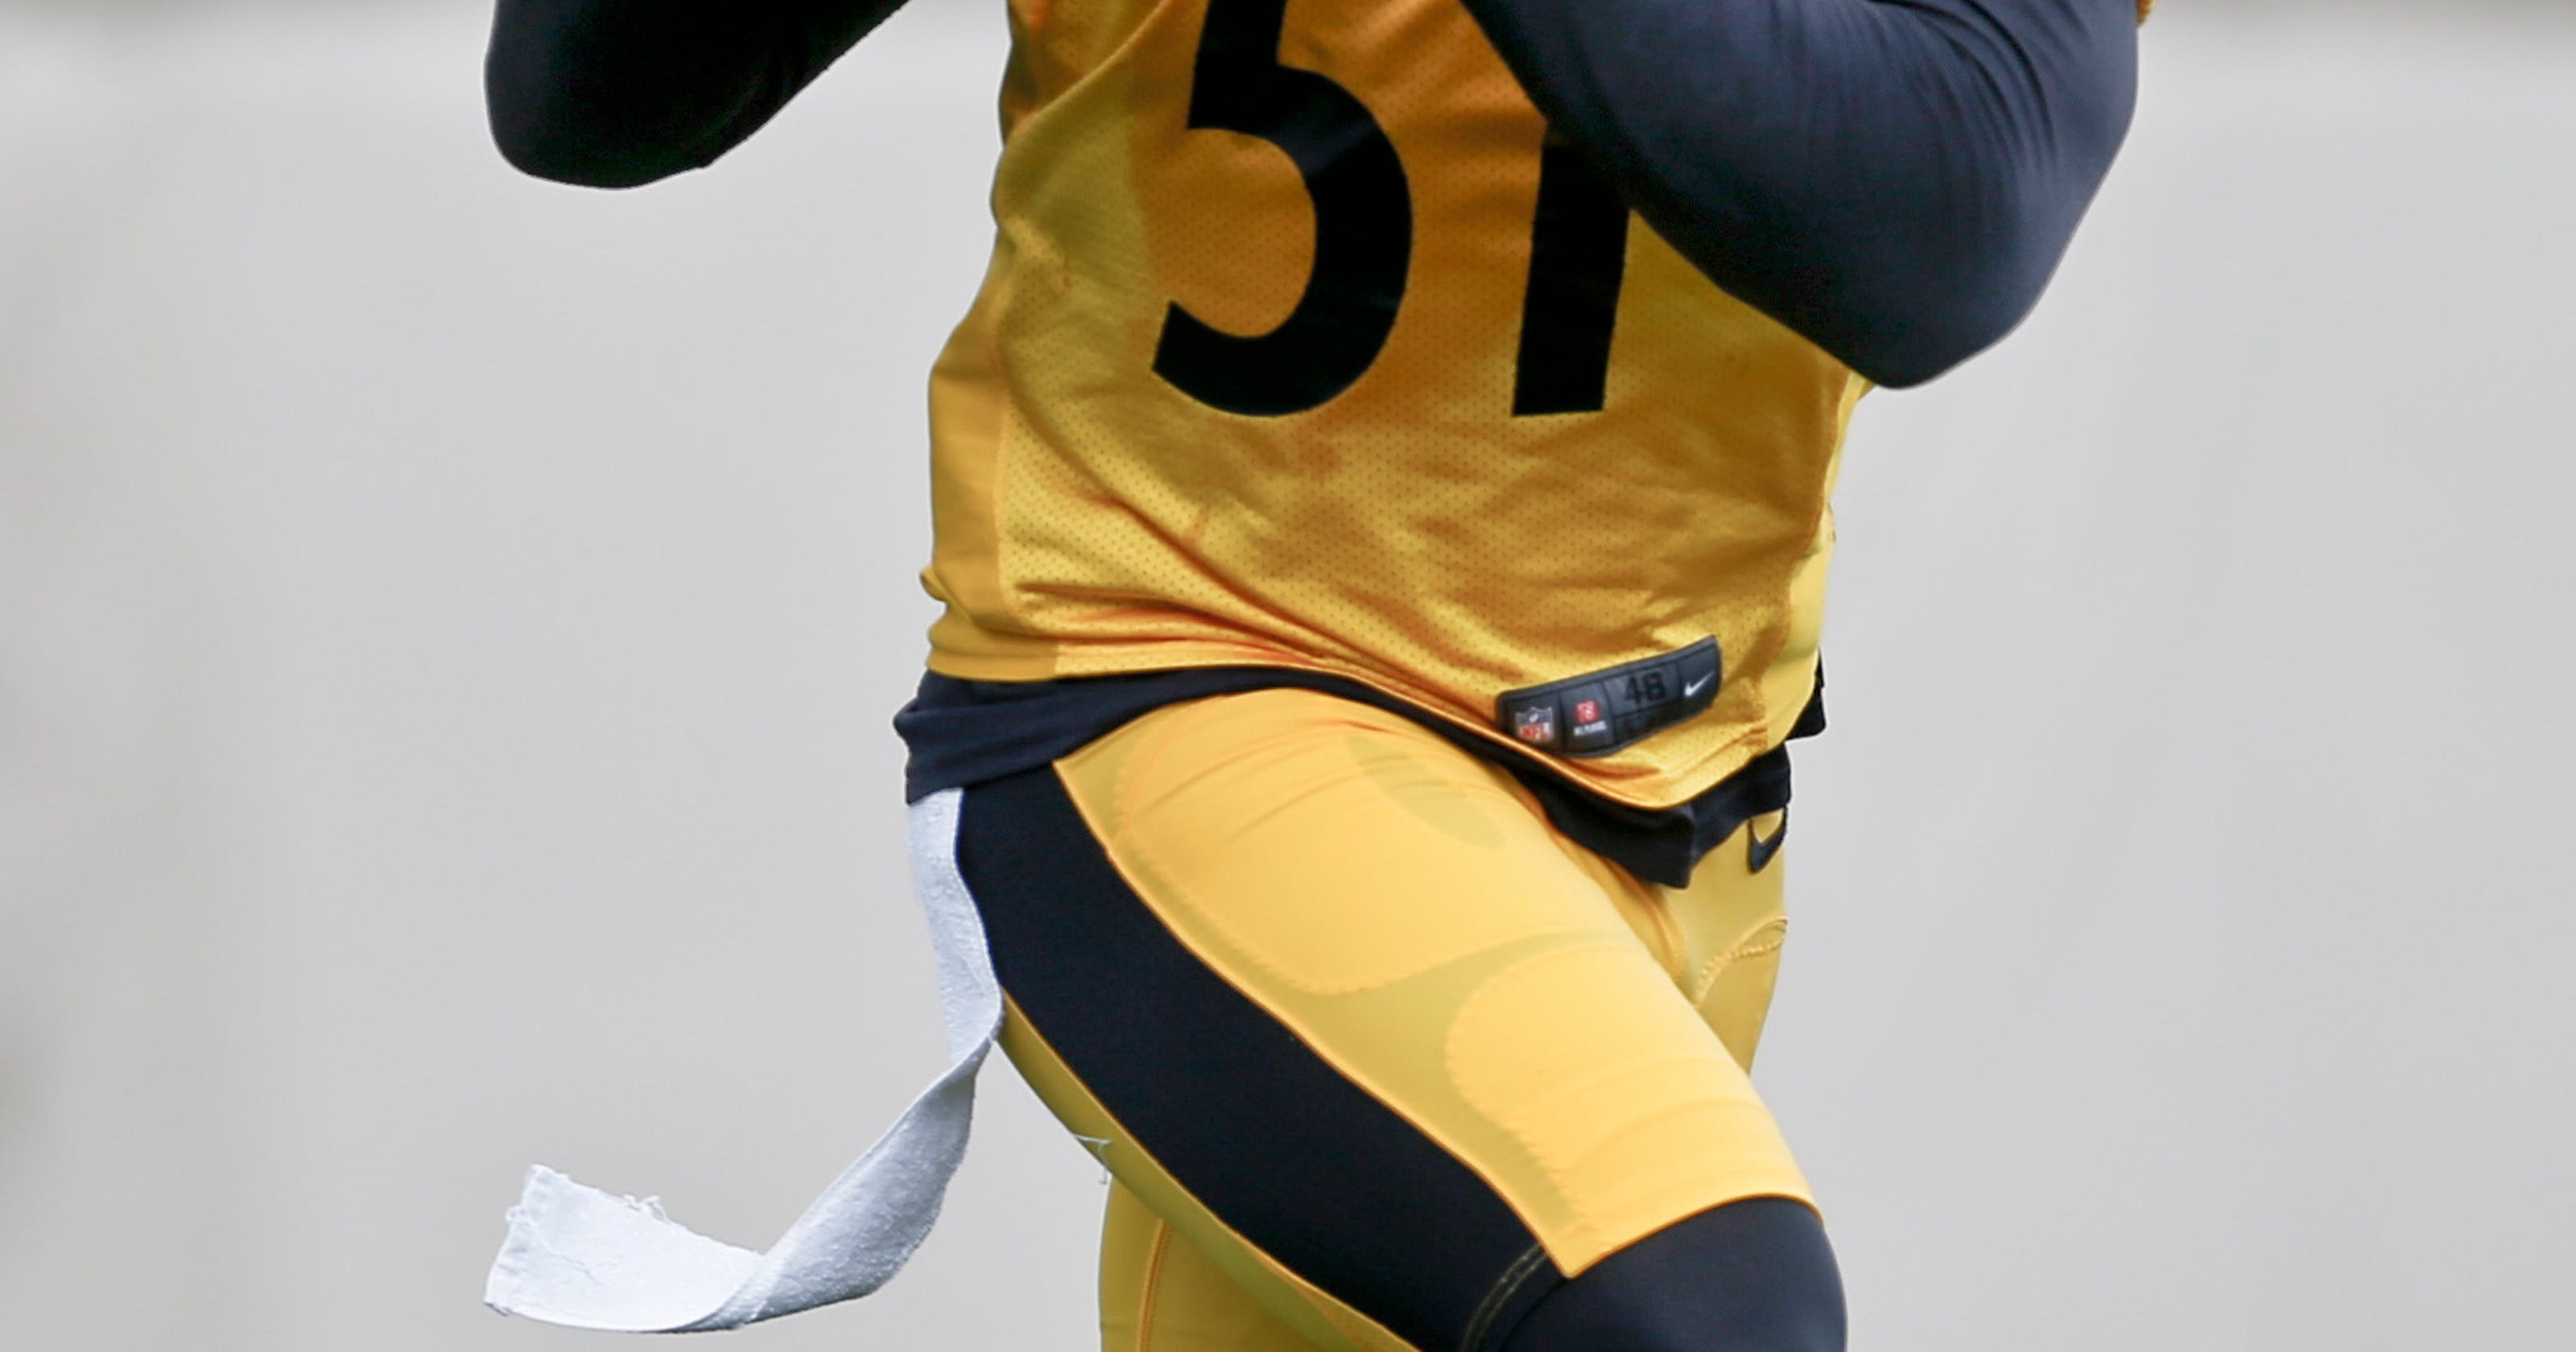 eb6828bcbc1 Matakevich, Bostic battle for starting ILB job with Steelers